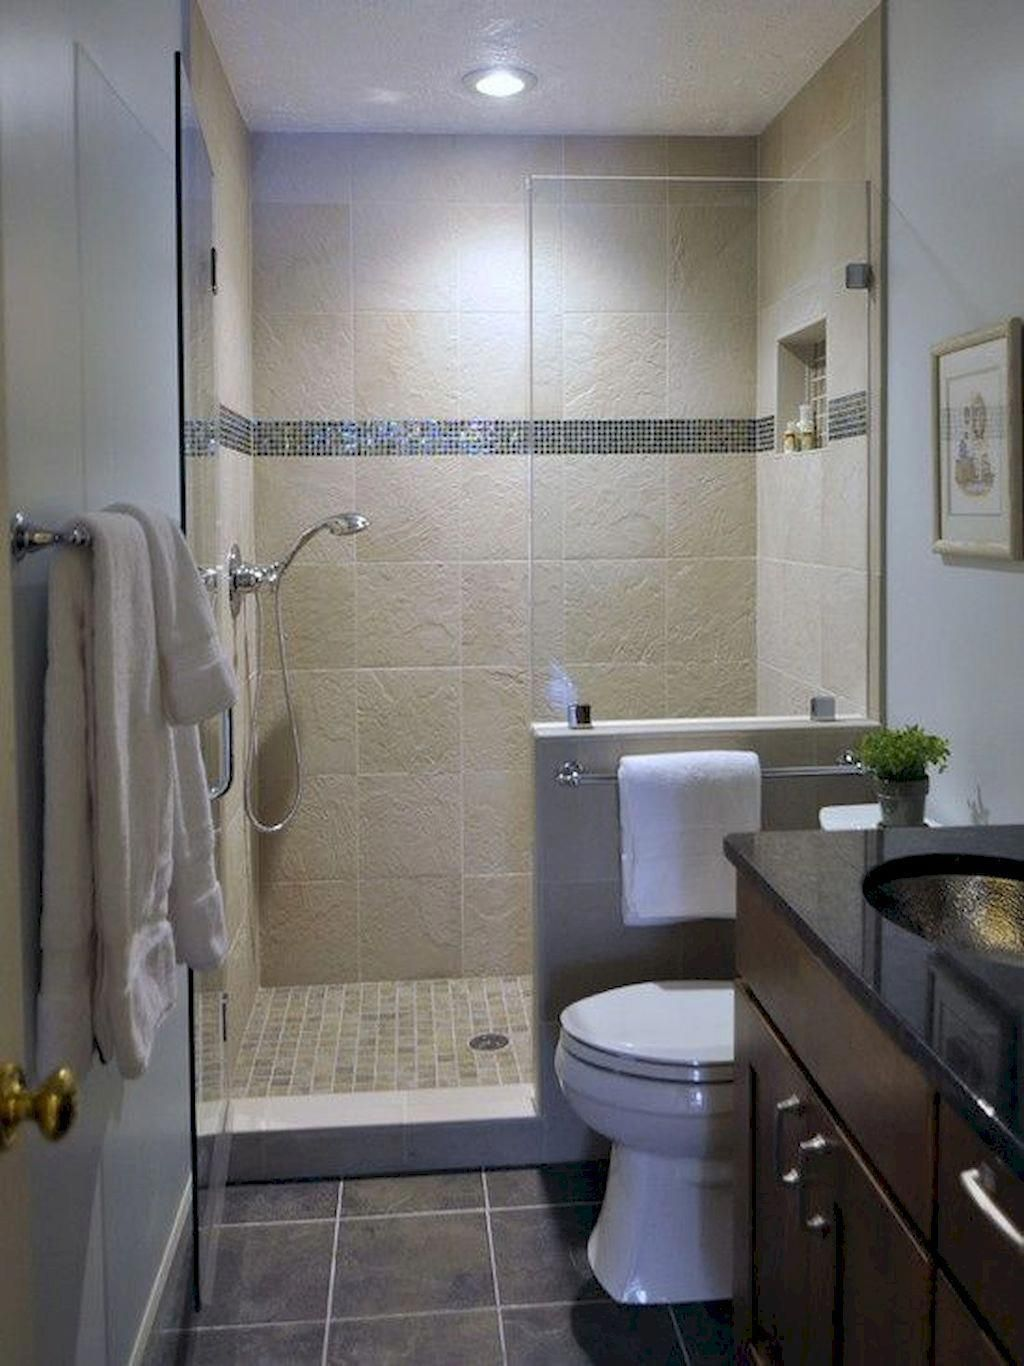 Average Cost Of Bathroom Remodel Per Square Foot Bathrooms Bathroompicture Bat Small Space Bathroom Small Bathroom Remodel Pictures Bathroom Remodel Designs